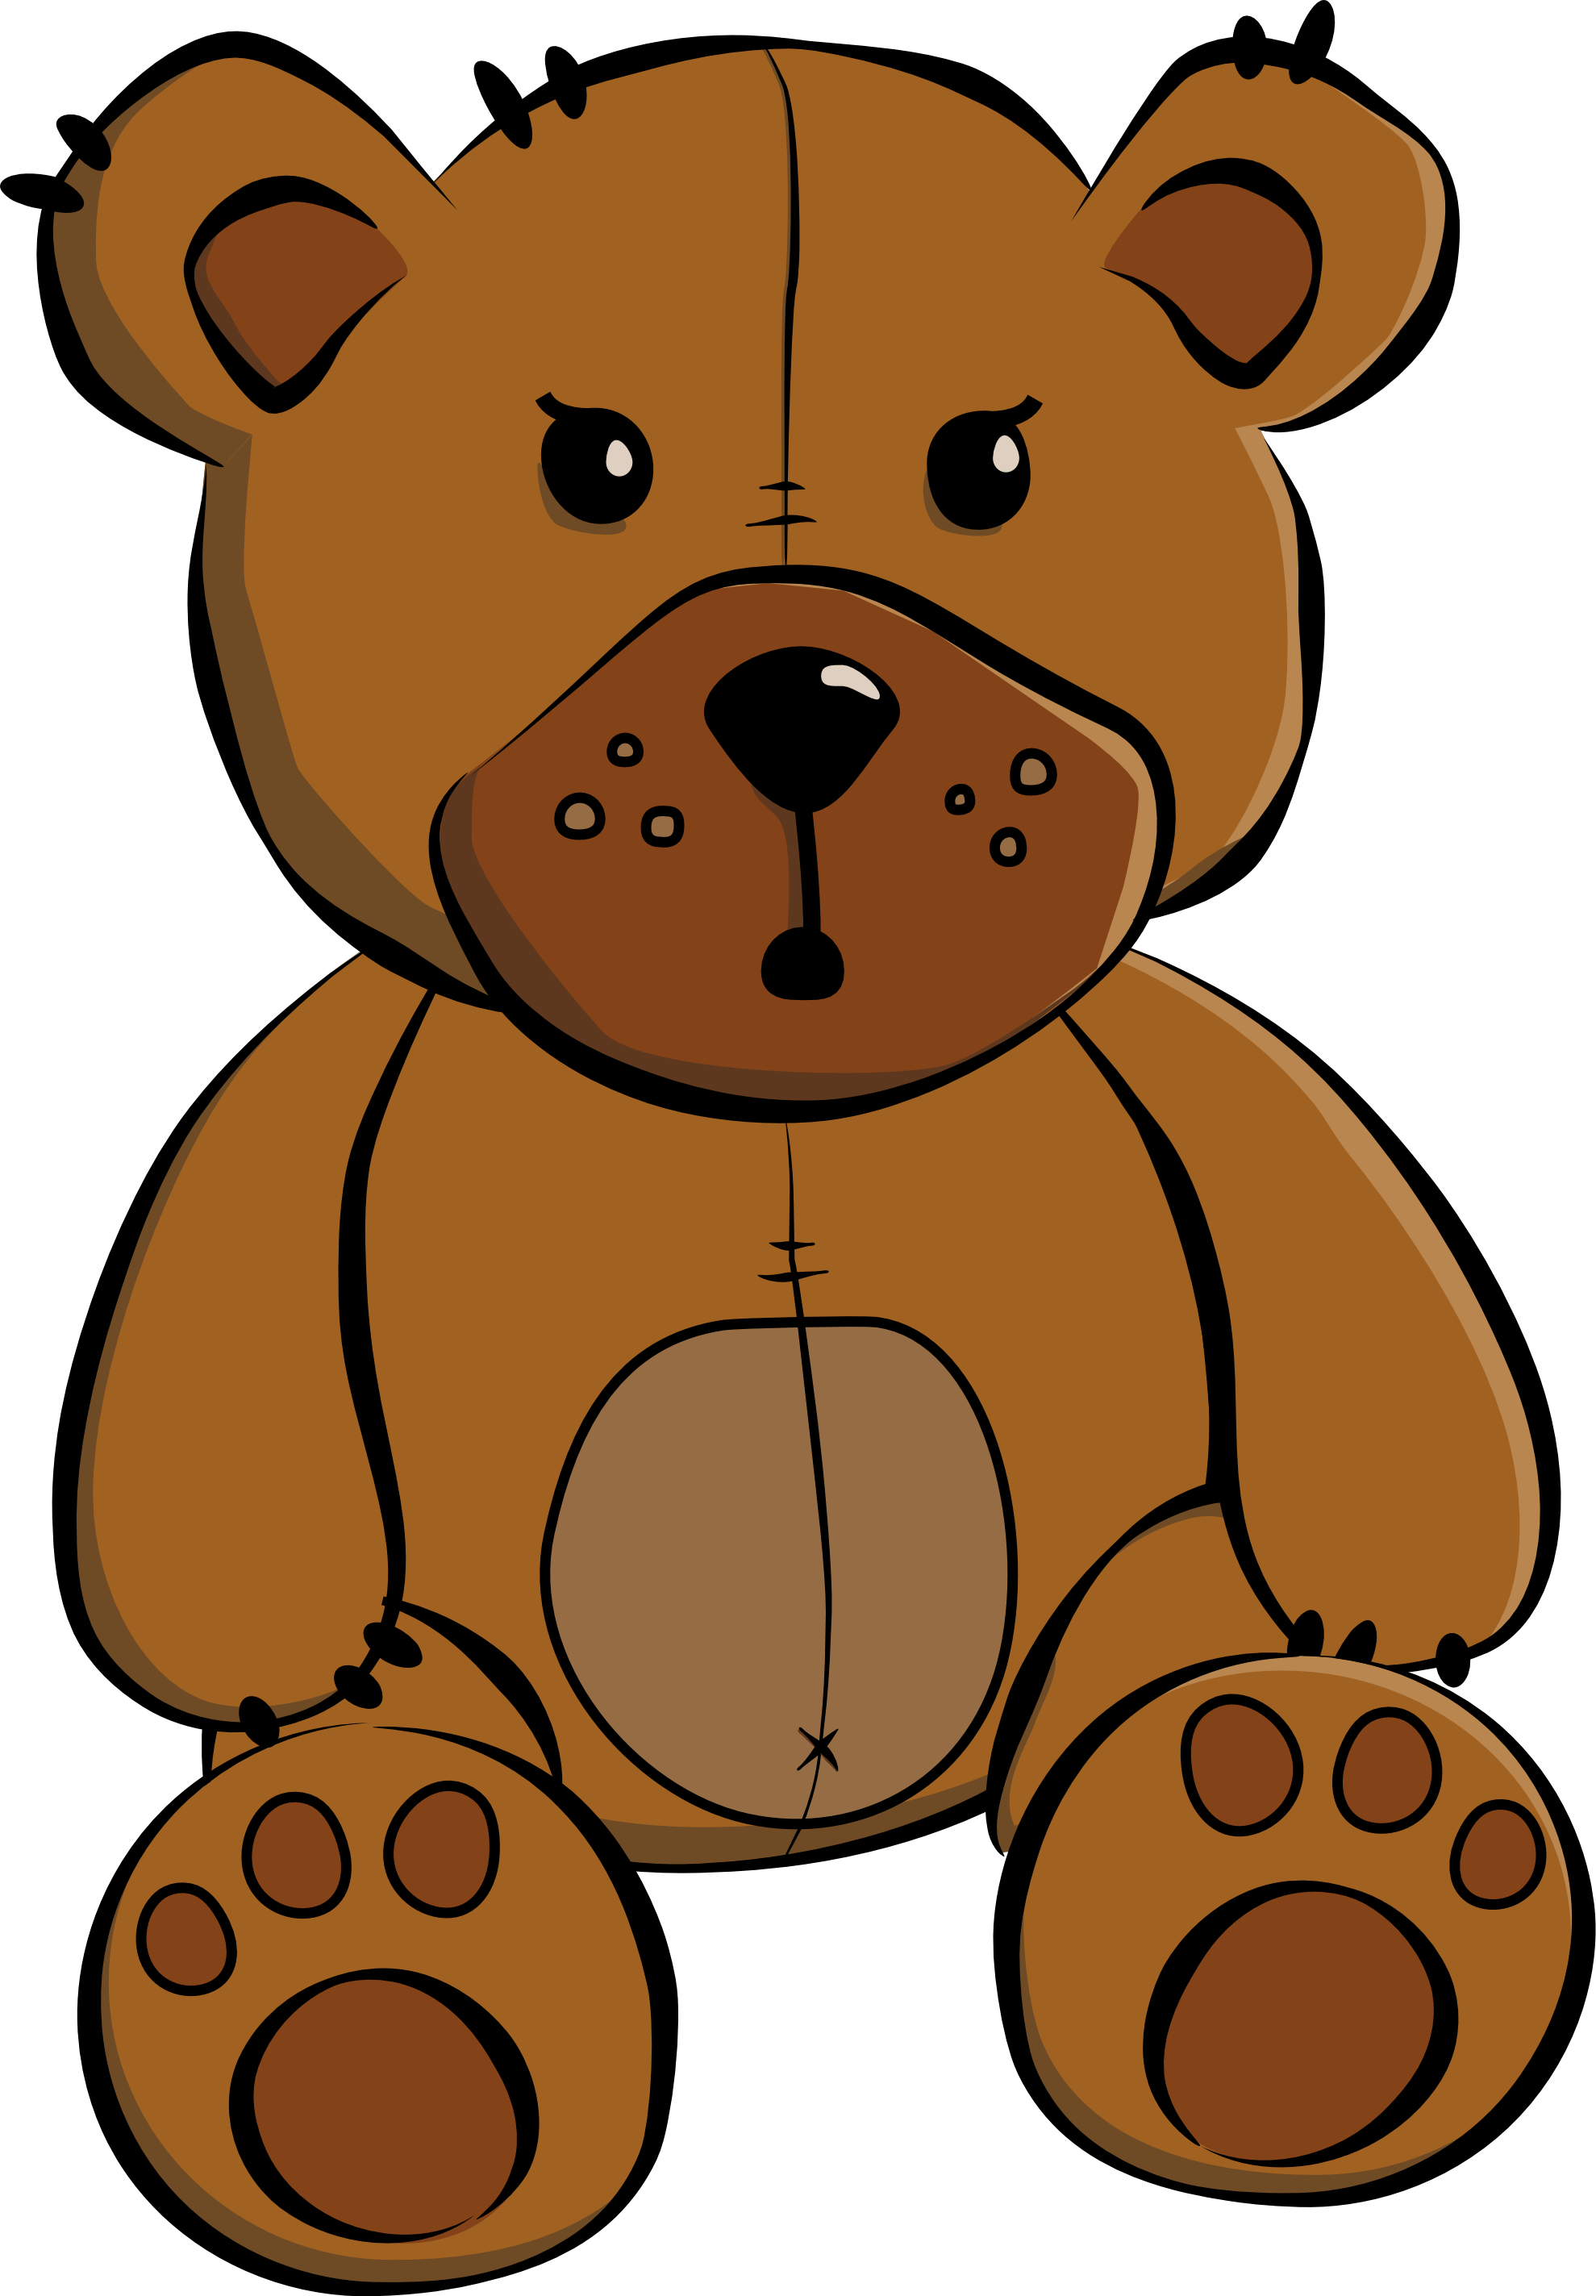 Baby bear clipart face banner freeuse library Free Cartoon Bear Pictures, Download Free Clip Art, Free Clip Art on ... banner freeuse library